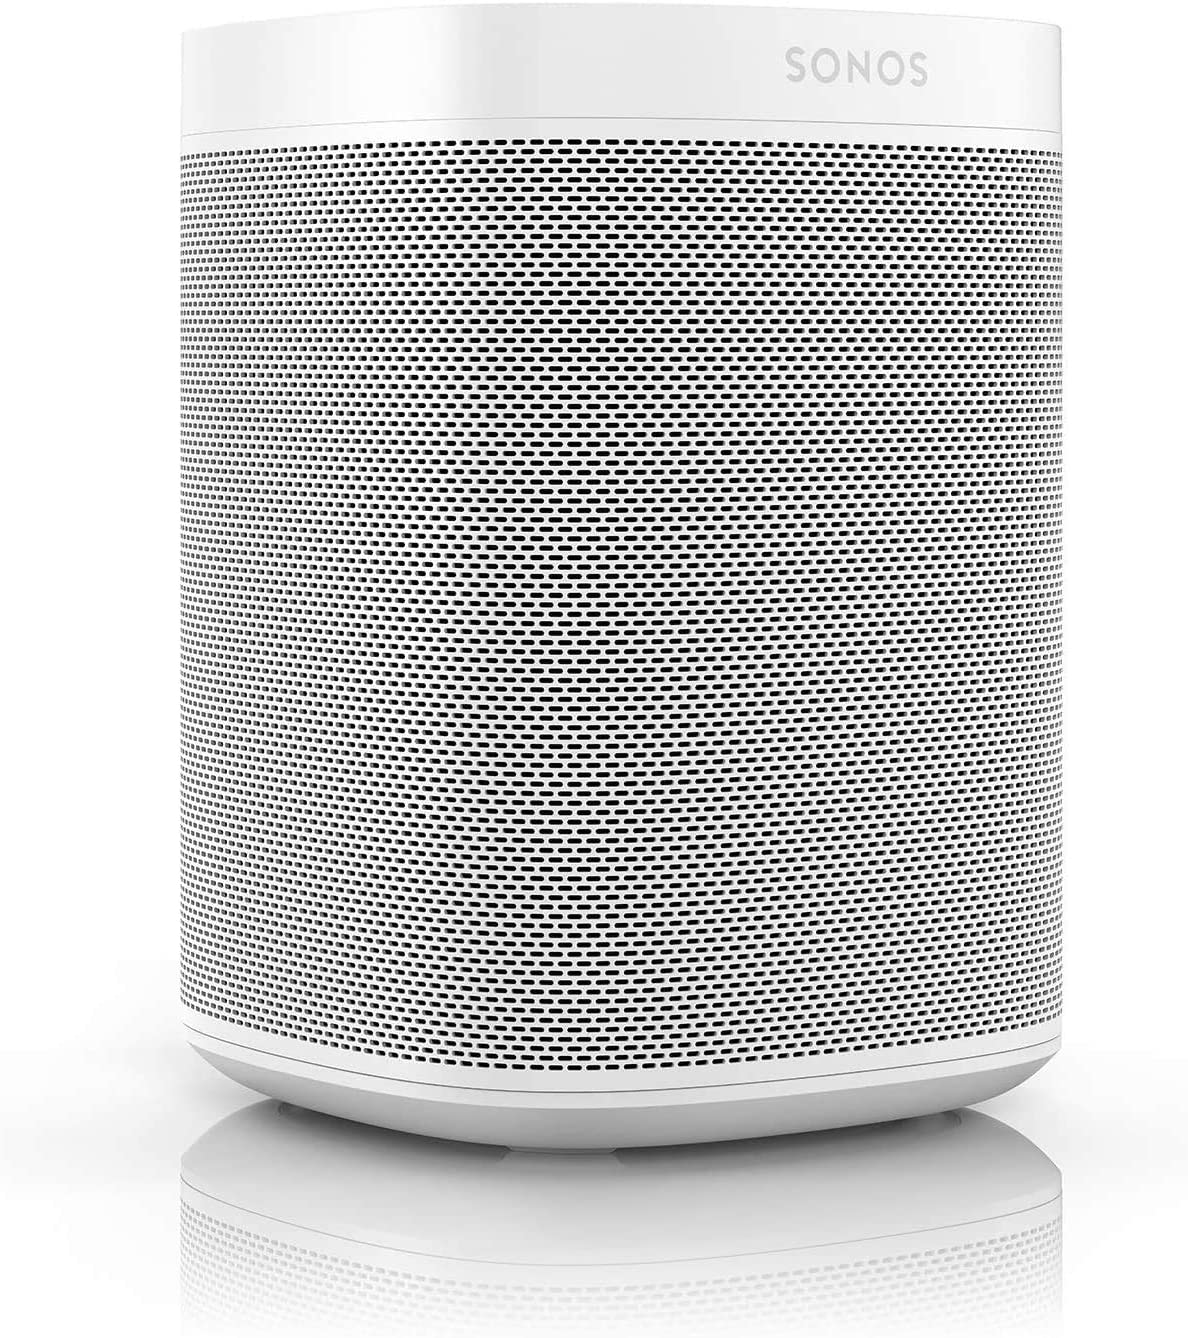 Sonos One (Gen 2) - Voice Controlled Smart Speaker with Amazon Alexa Built-in - White